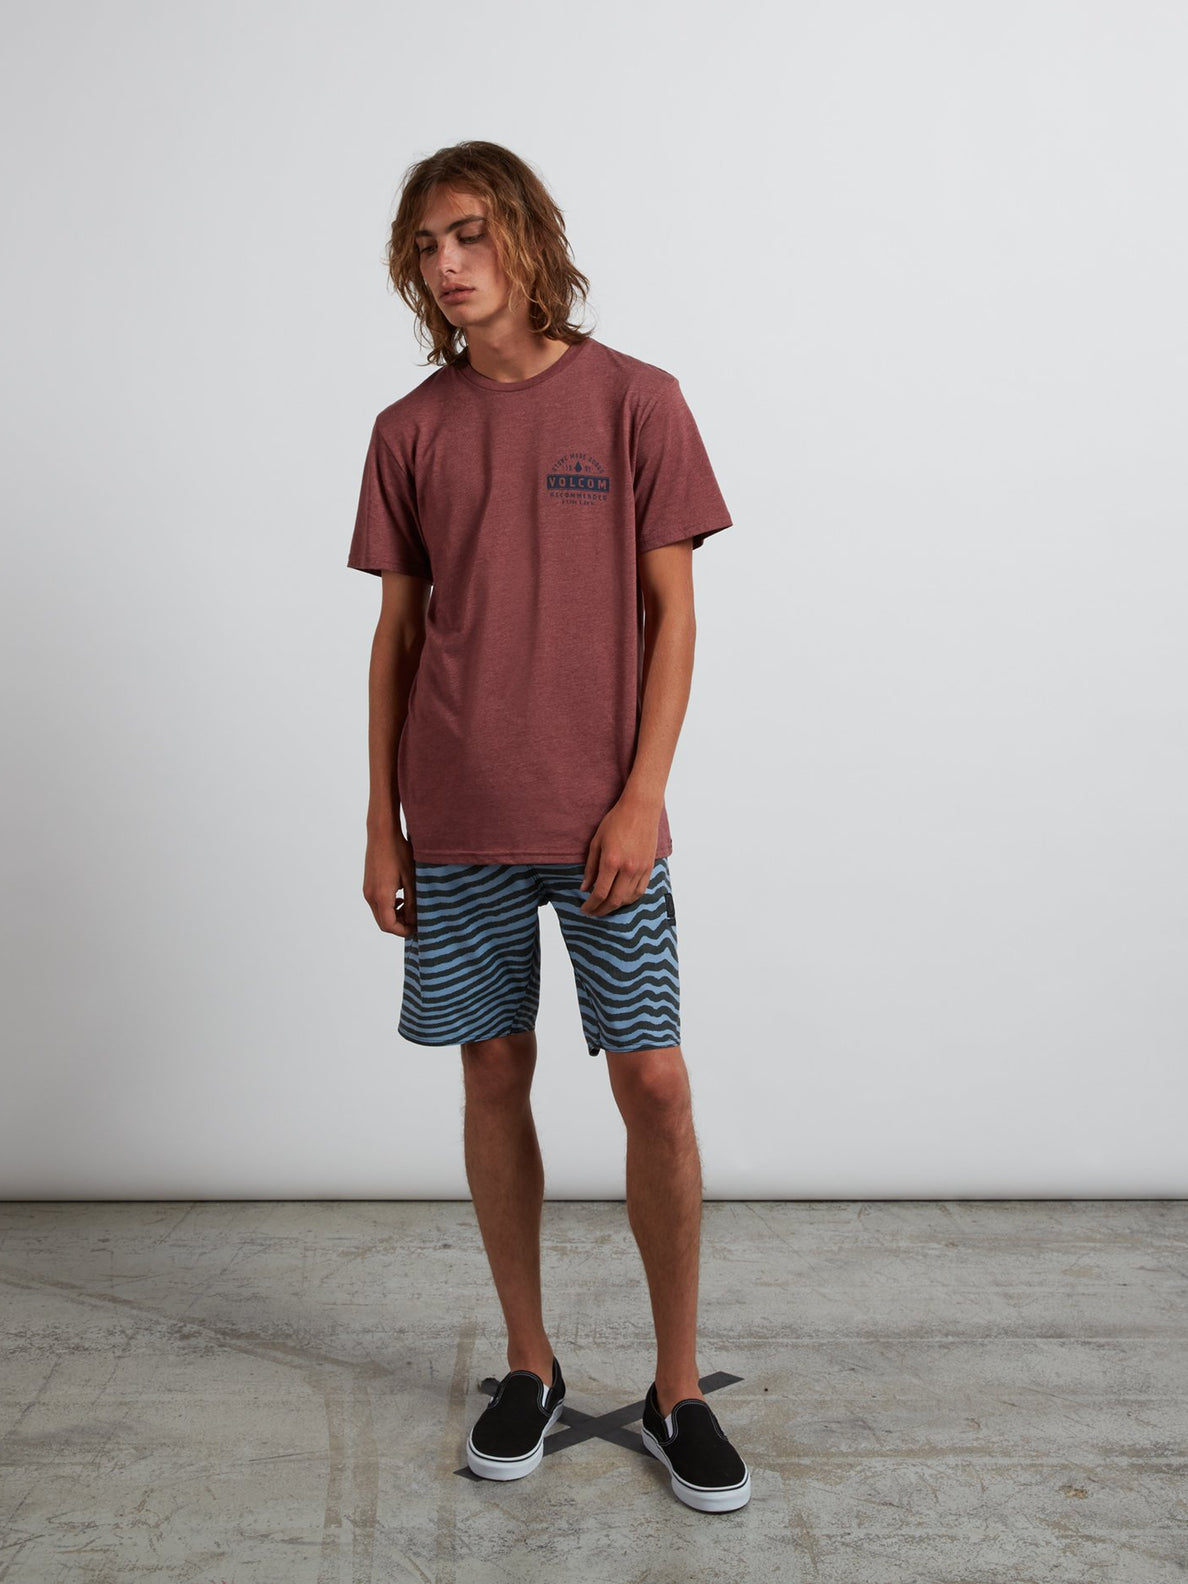 Barred Tee In Crimson, Wide View